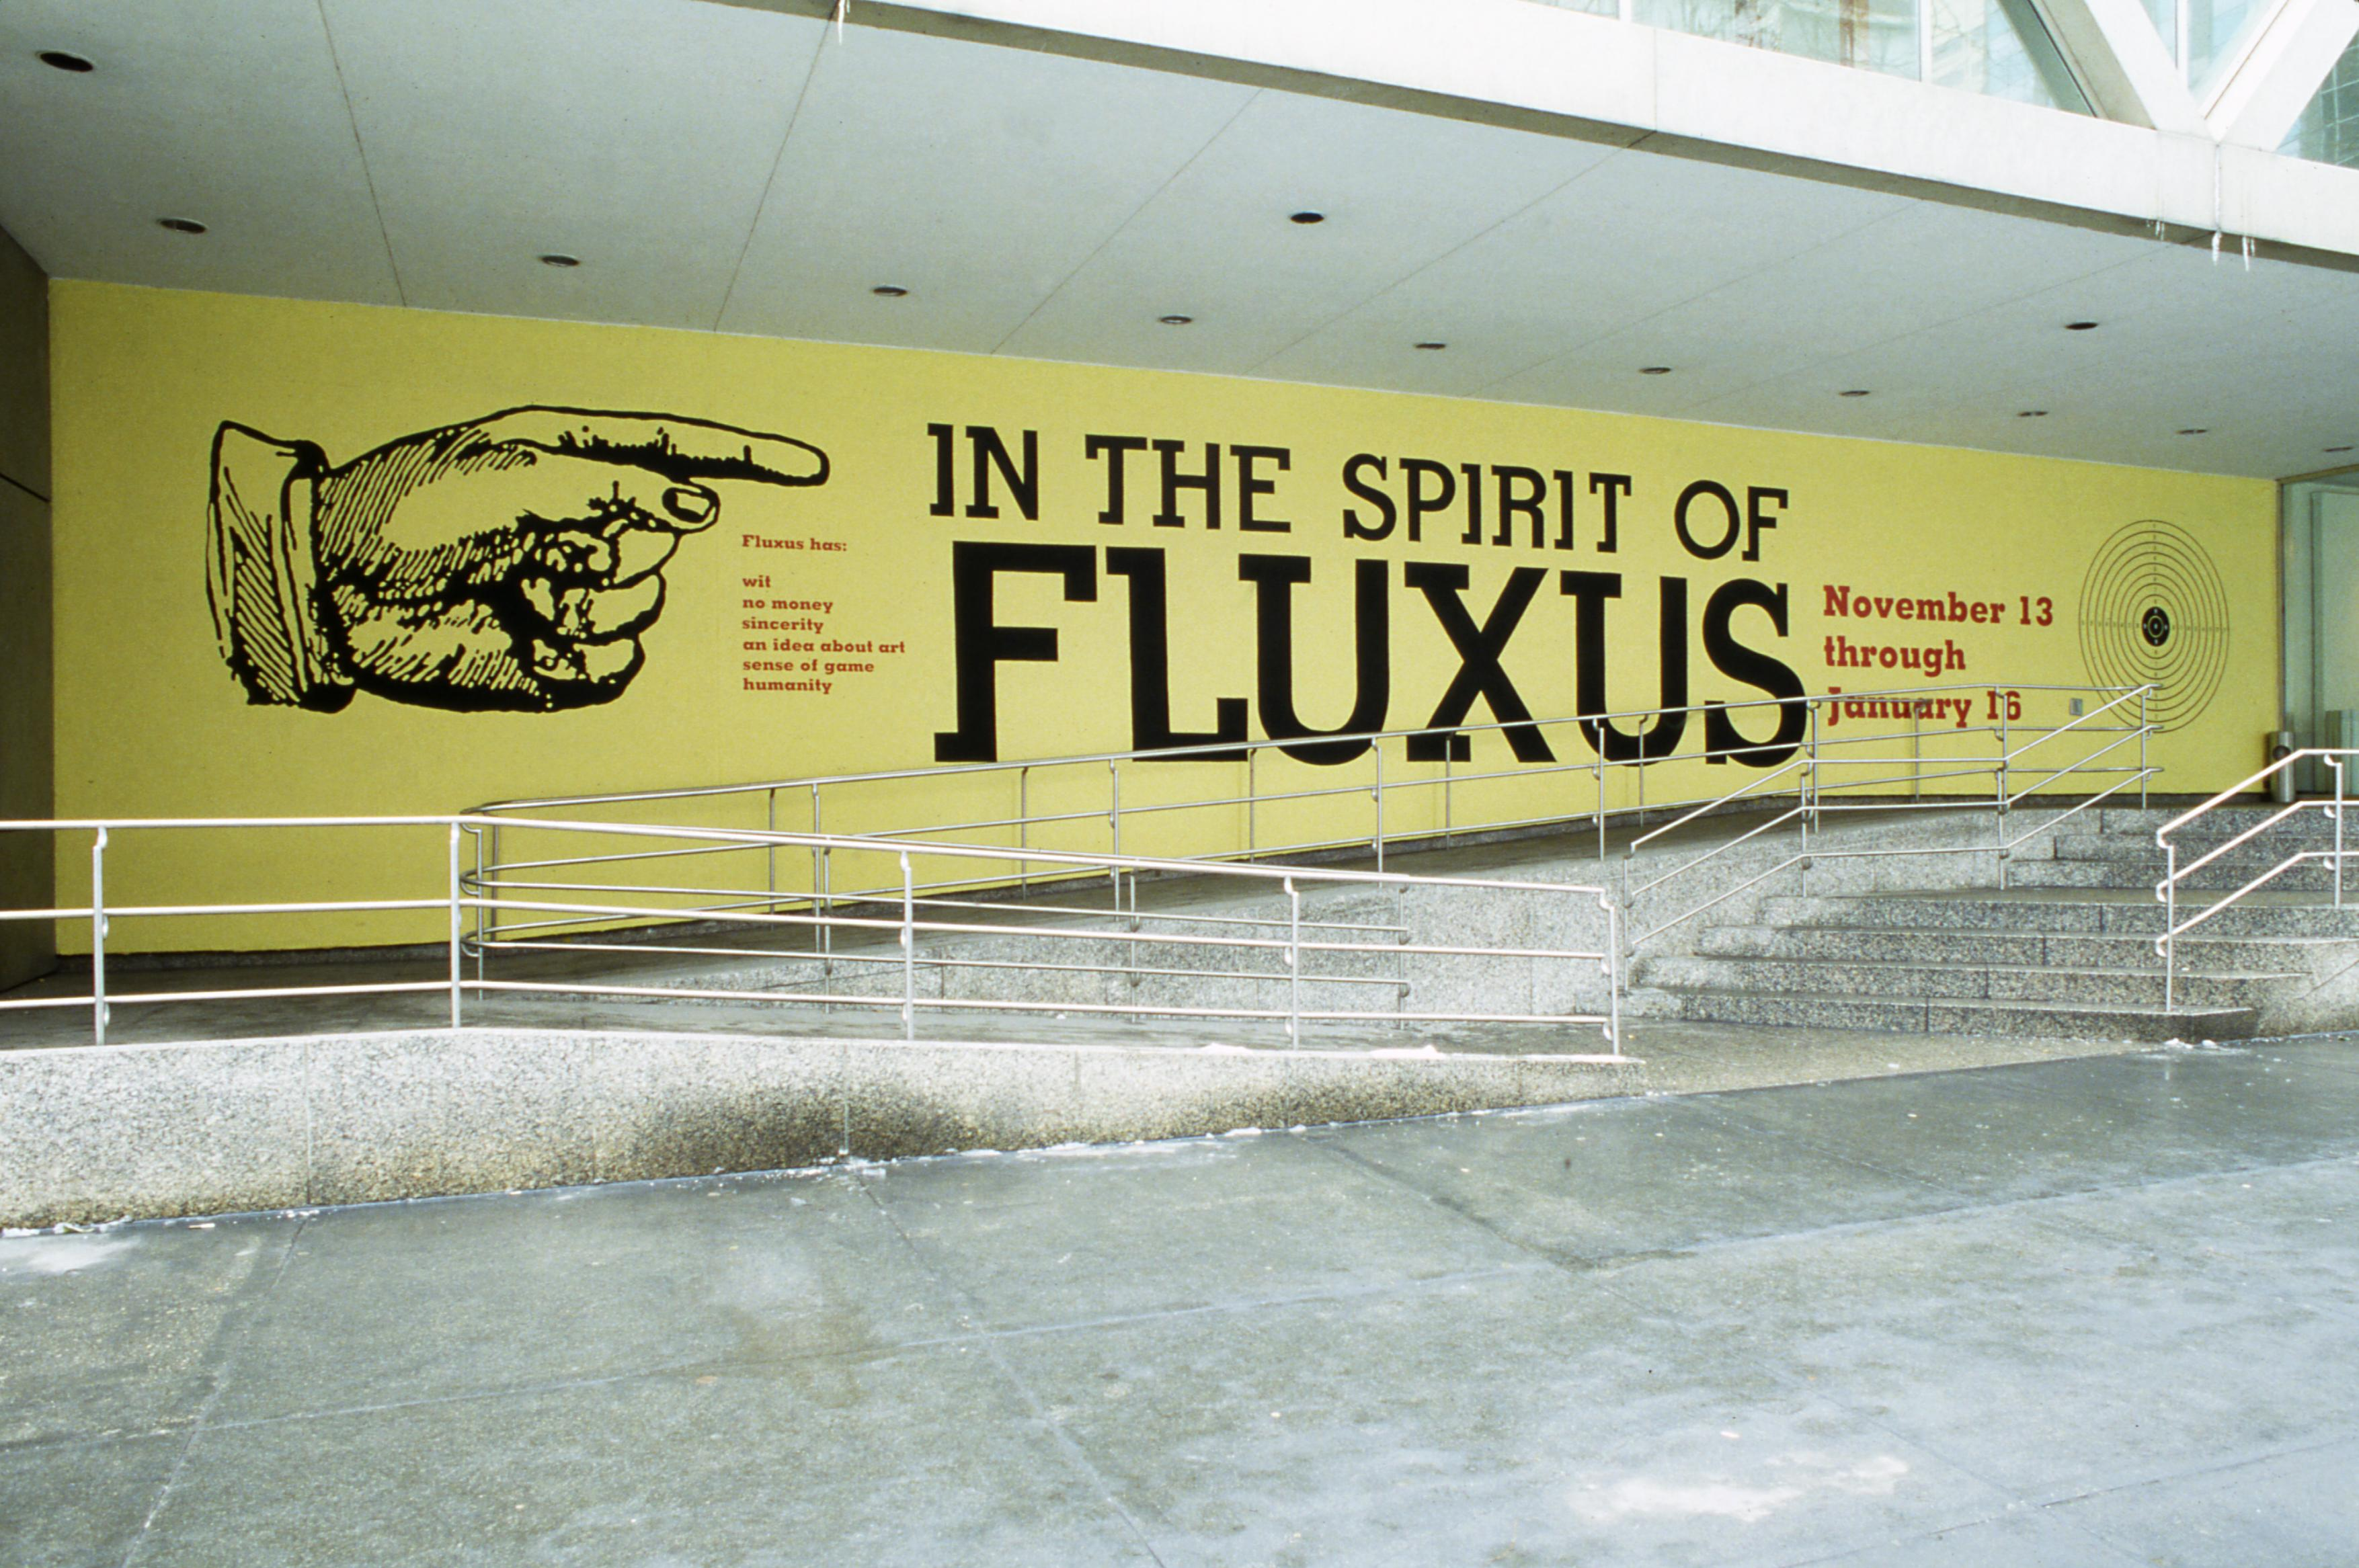 """A photograph of the MCA's former location on Ontario street with a banner that shows a large illustrated hand pointing at large text """"IN THE SPIRIT OF FLUXUS."""""""